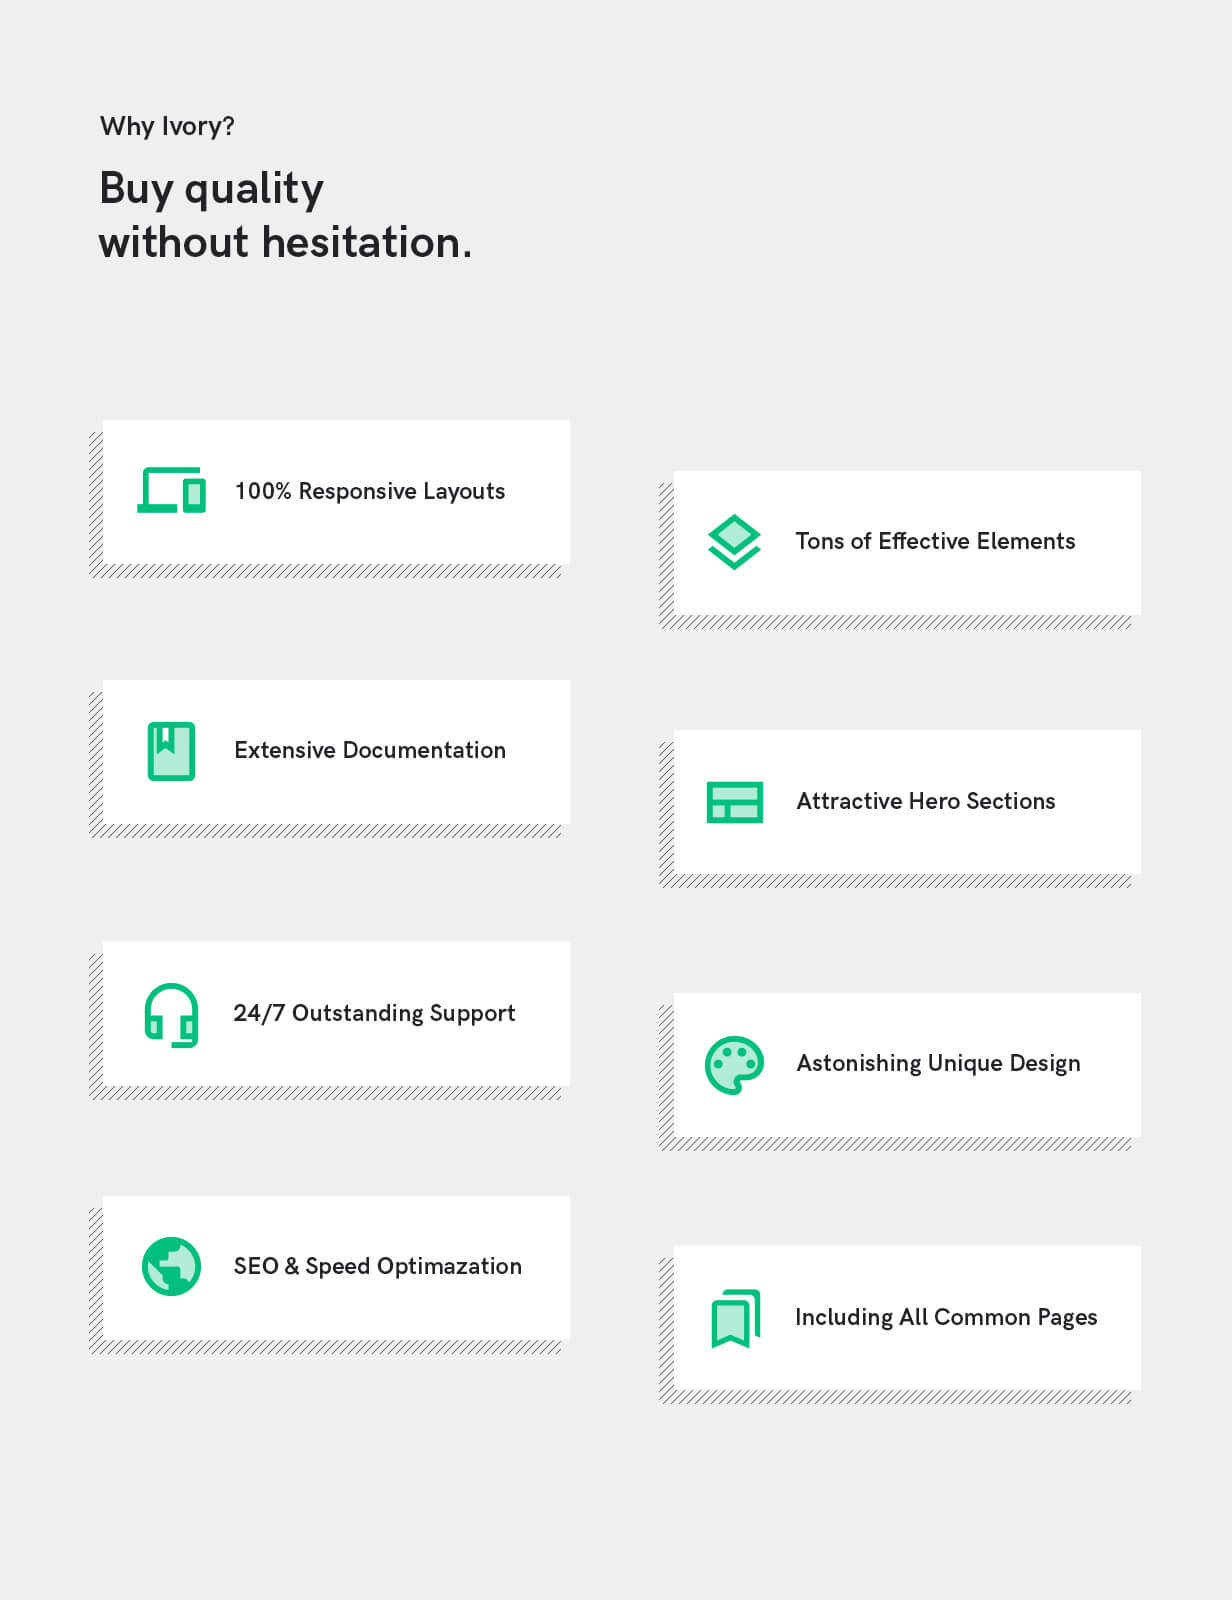 Why Ivory HTML5 template